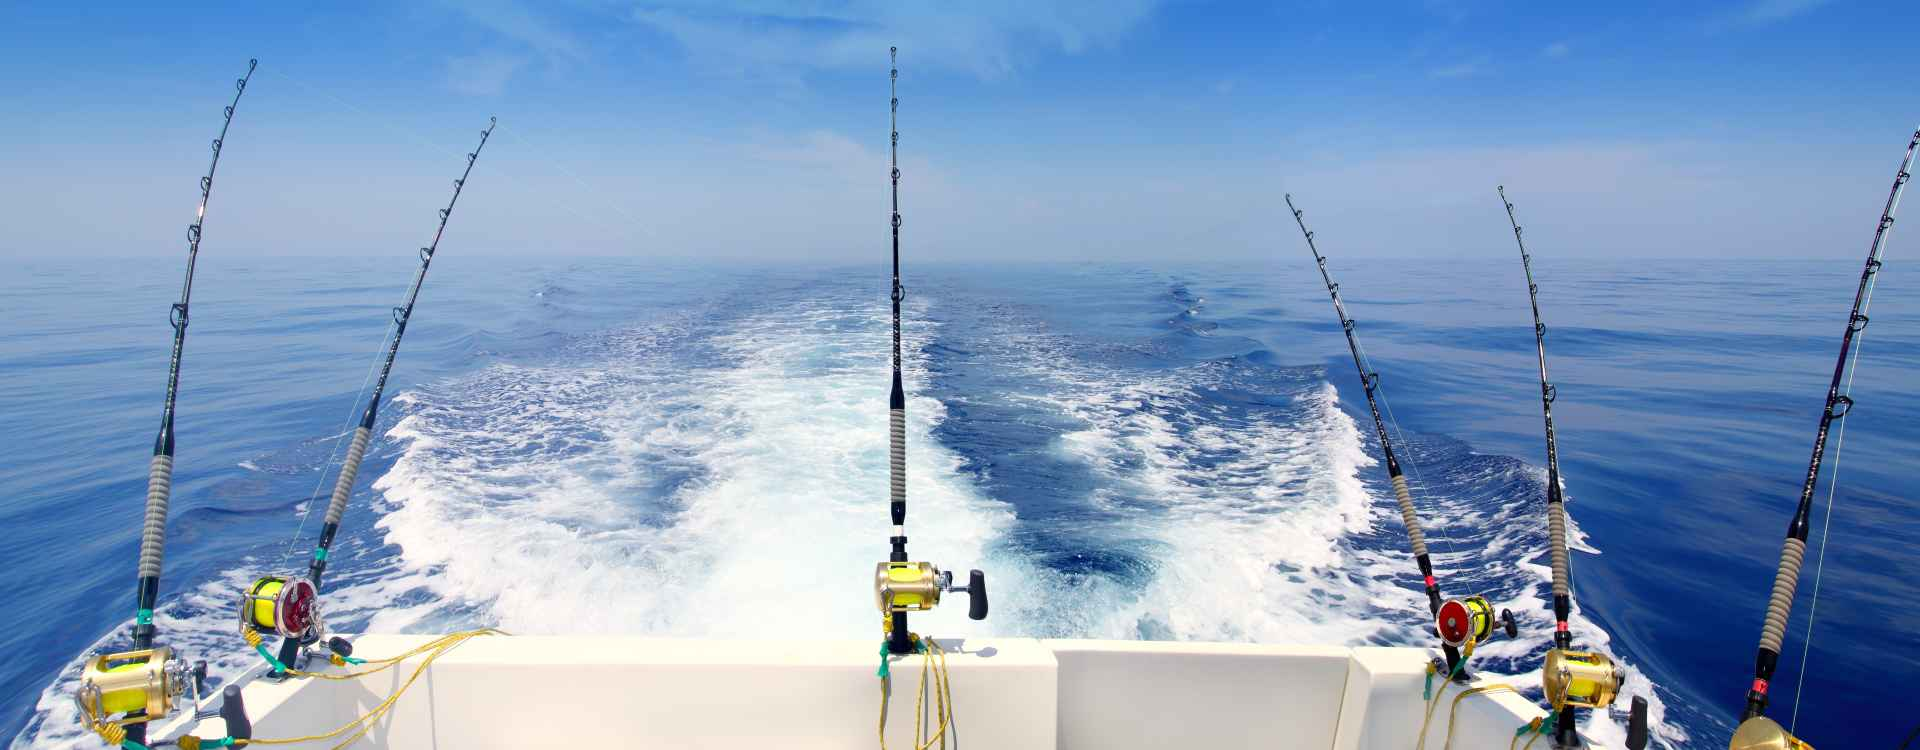 Sportfishing Tour in Ixtapa Zihuatanejo Mexico | Pacific Tours Ixtapa. Offshore and Inshore Fishing is where these fishing charters can take you to. All of our fishing boats depart from Zihuatanejo Main Dock. Ixtapa Sport fishing Boats has a excellent captains and the most reasonable prices for you to enjoy fishing with your family